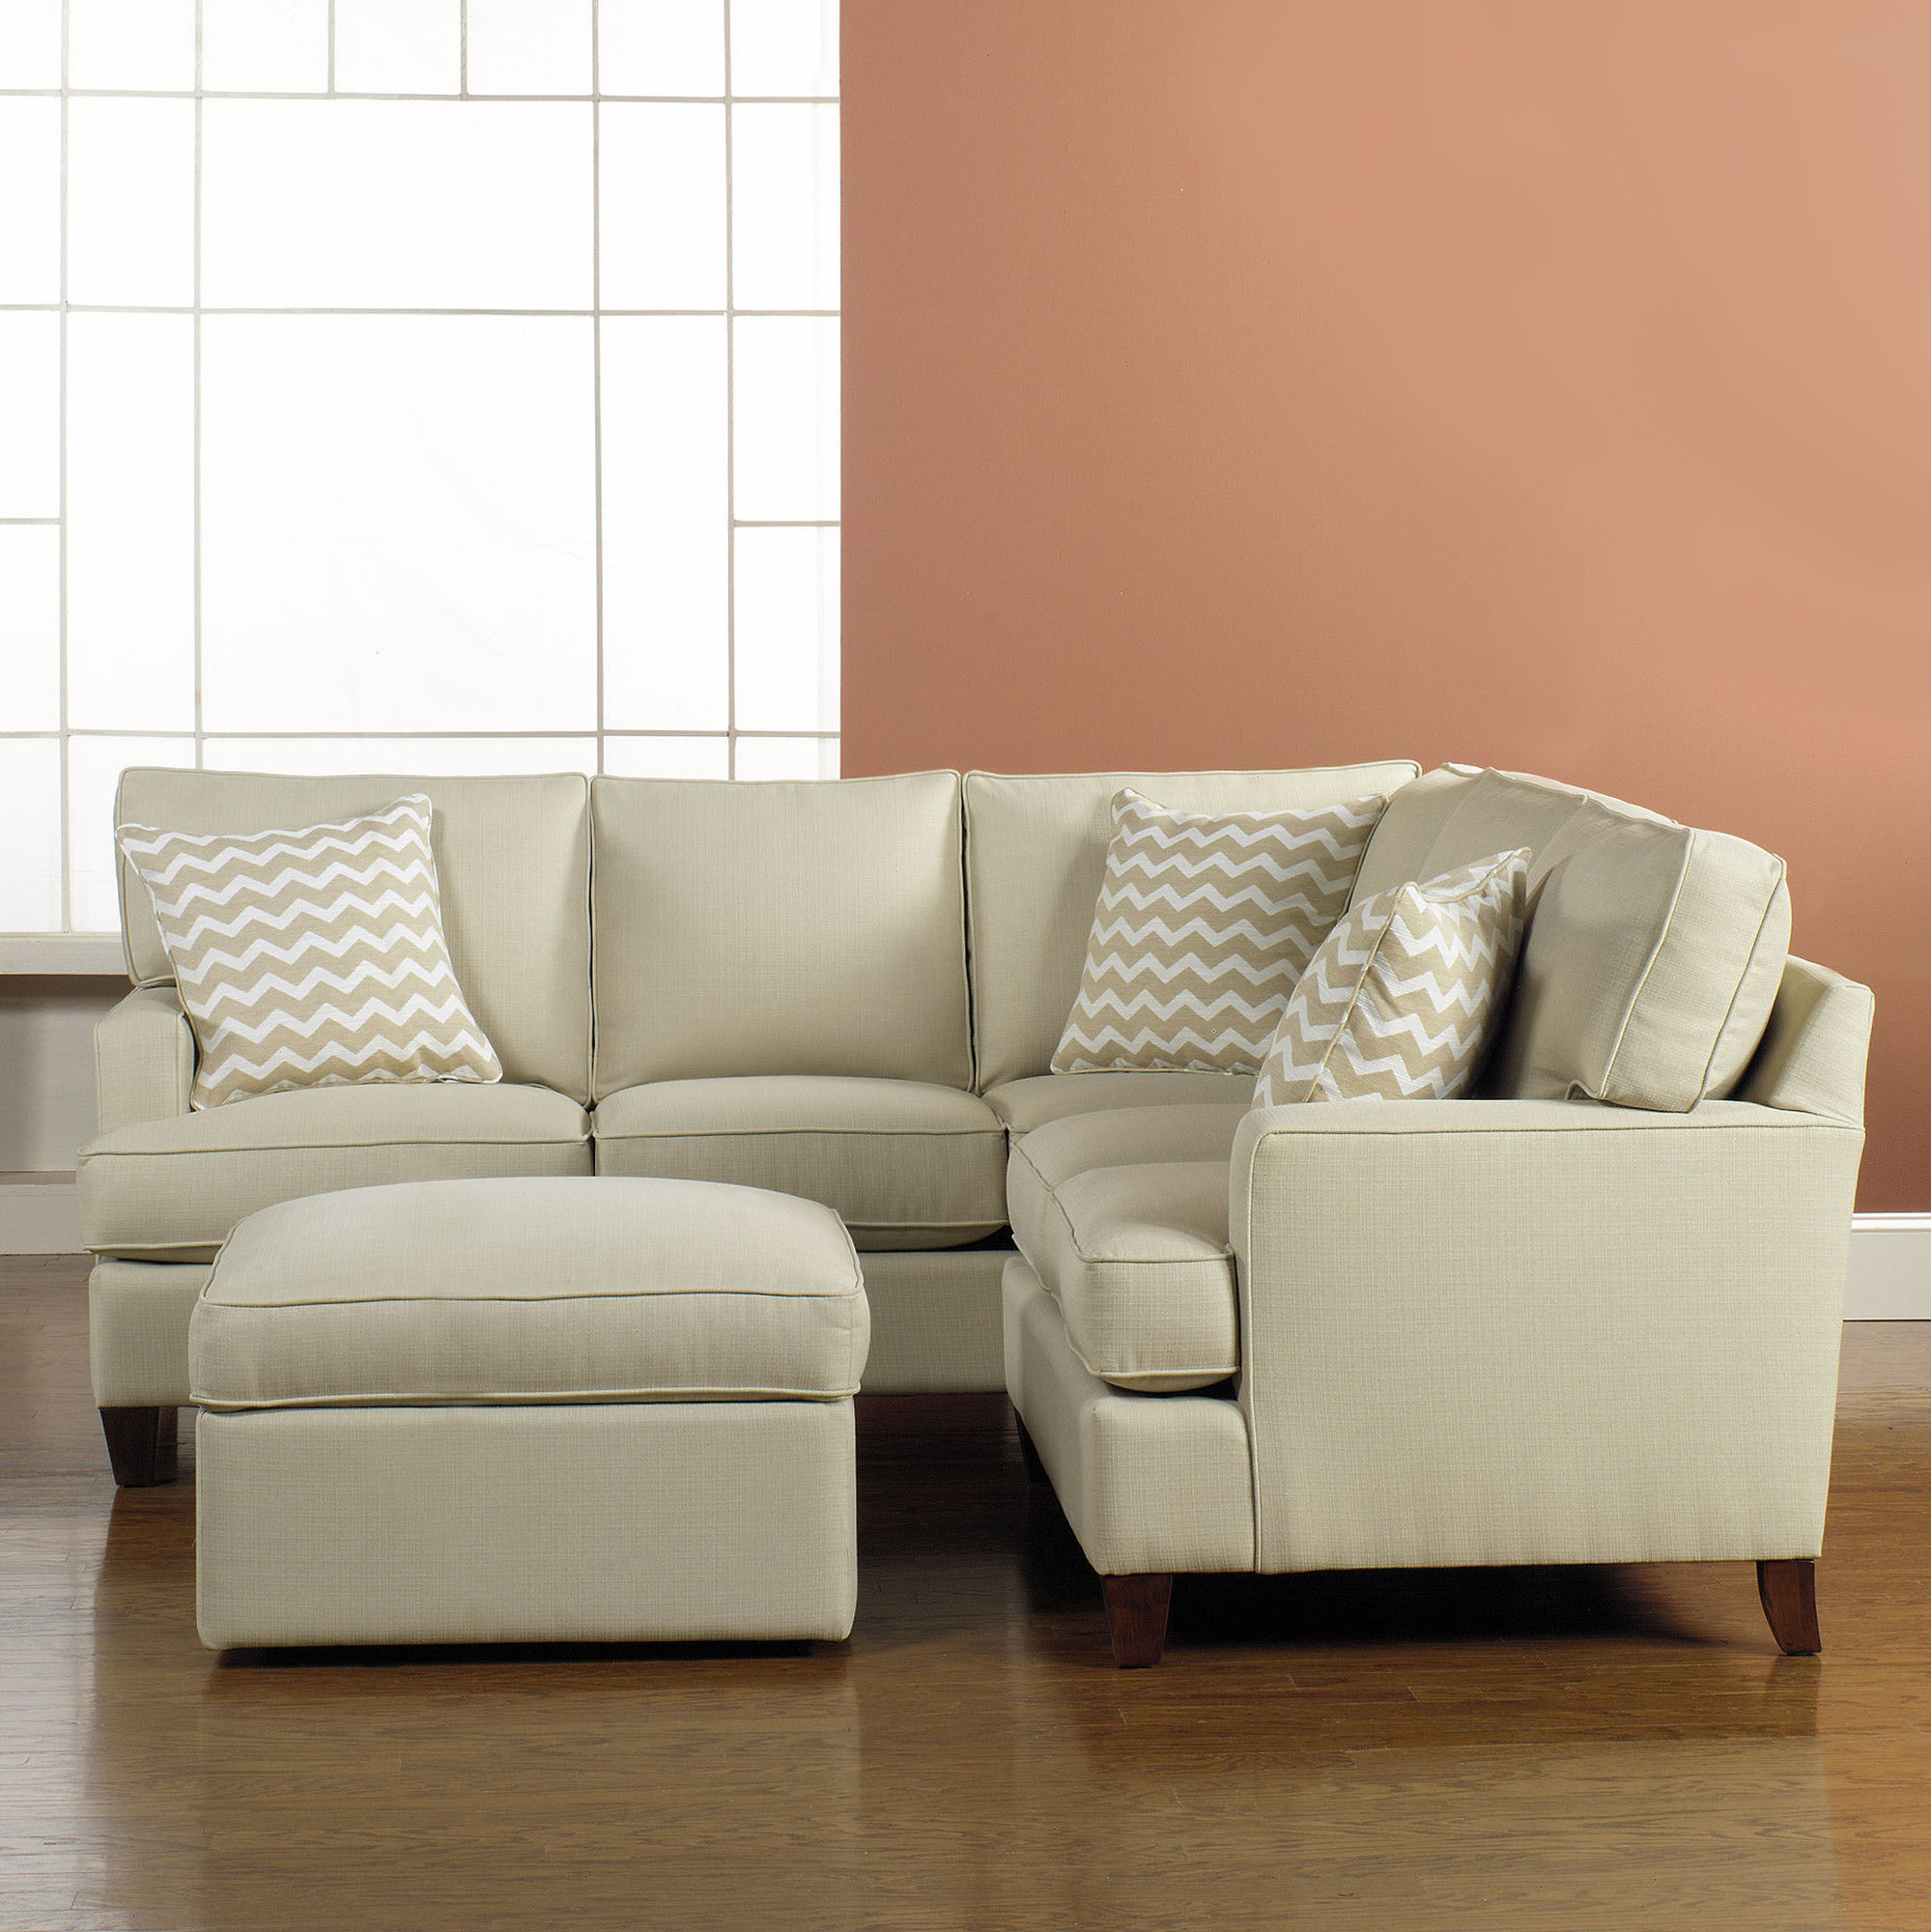 Picture of: Small Couches For Small Spaces You Ll Love In 2020 Visualhunt